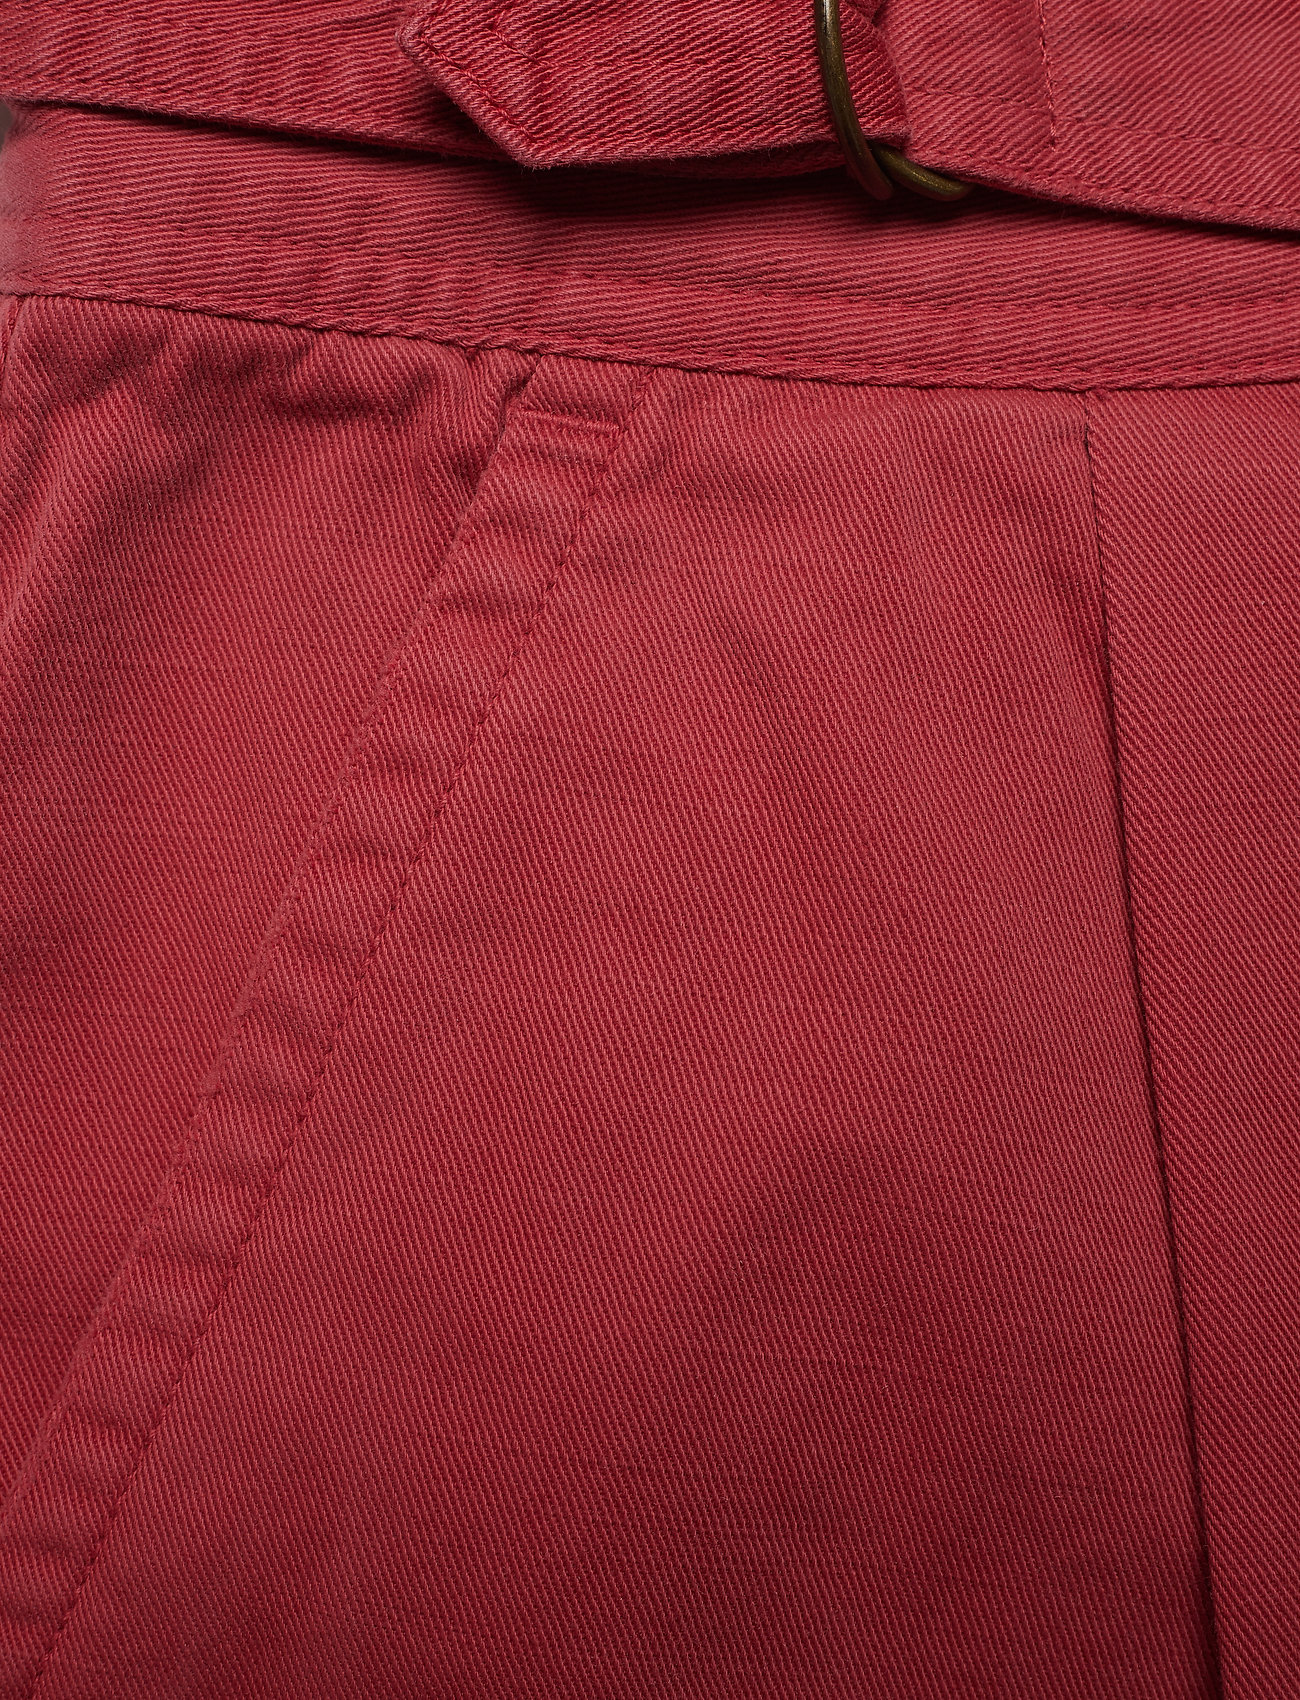 Buckled Chino Lauren RedPolo Ralph Shortnantucket HED29I